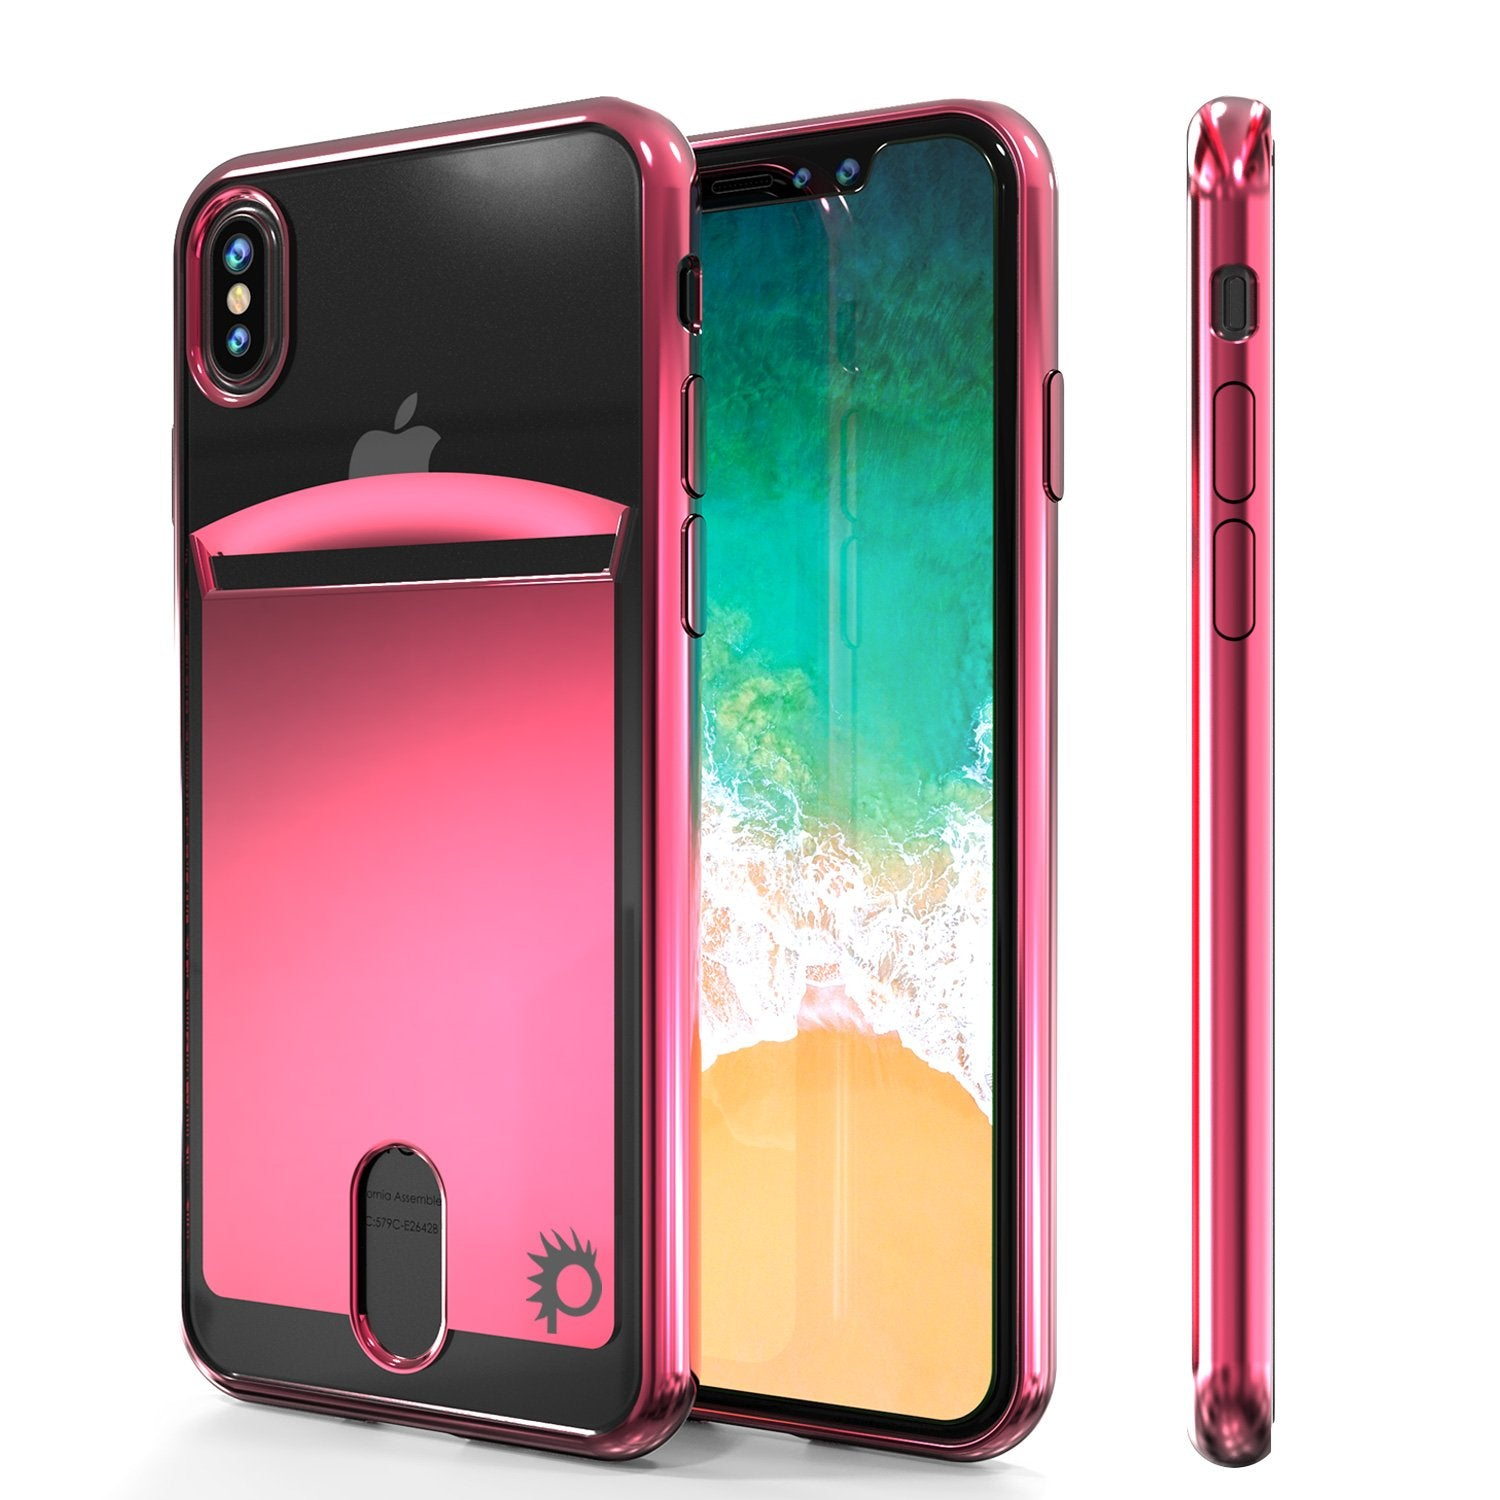 iPhone 8 Case, PUNKcase [LUCID Series] Slim Fit Protective Dual Layer Armor Cover W/ Scratch Resistant Screen Protector [Rose Pink]